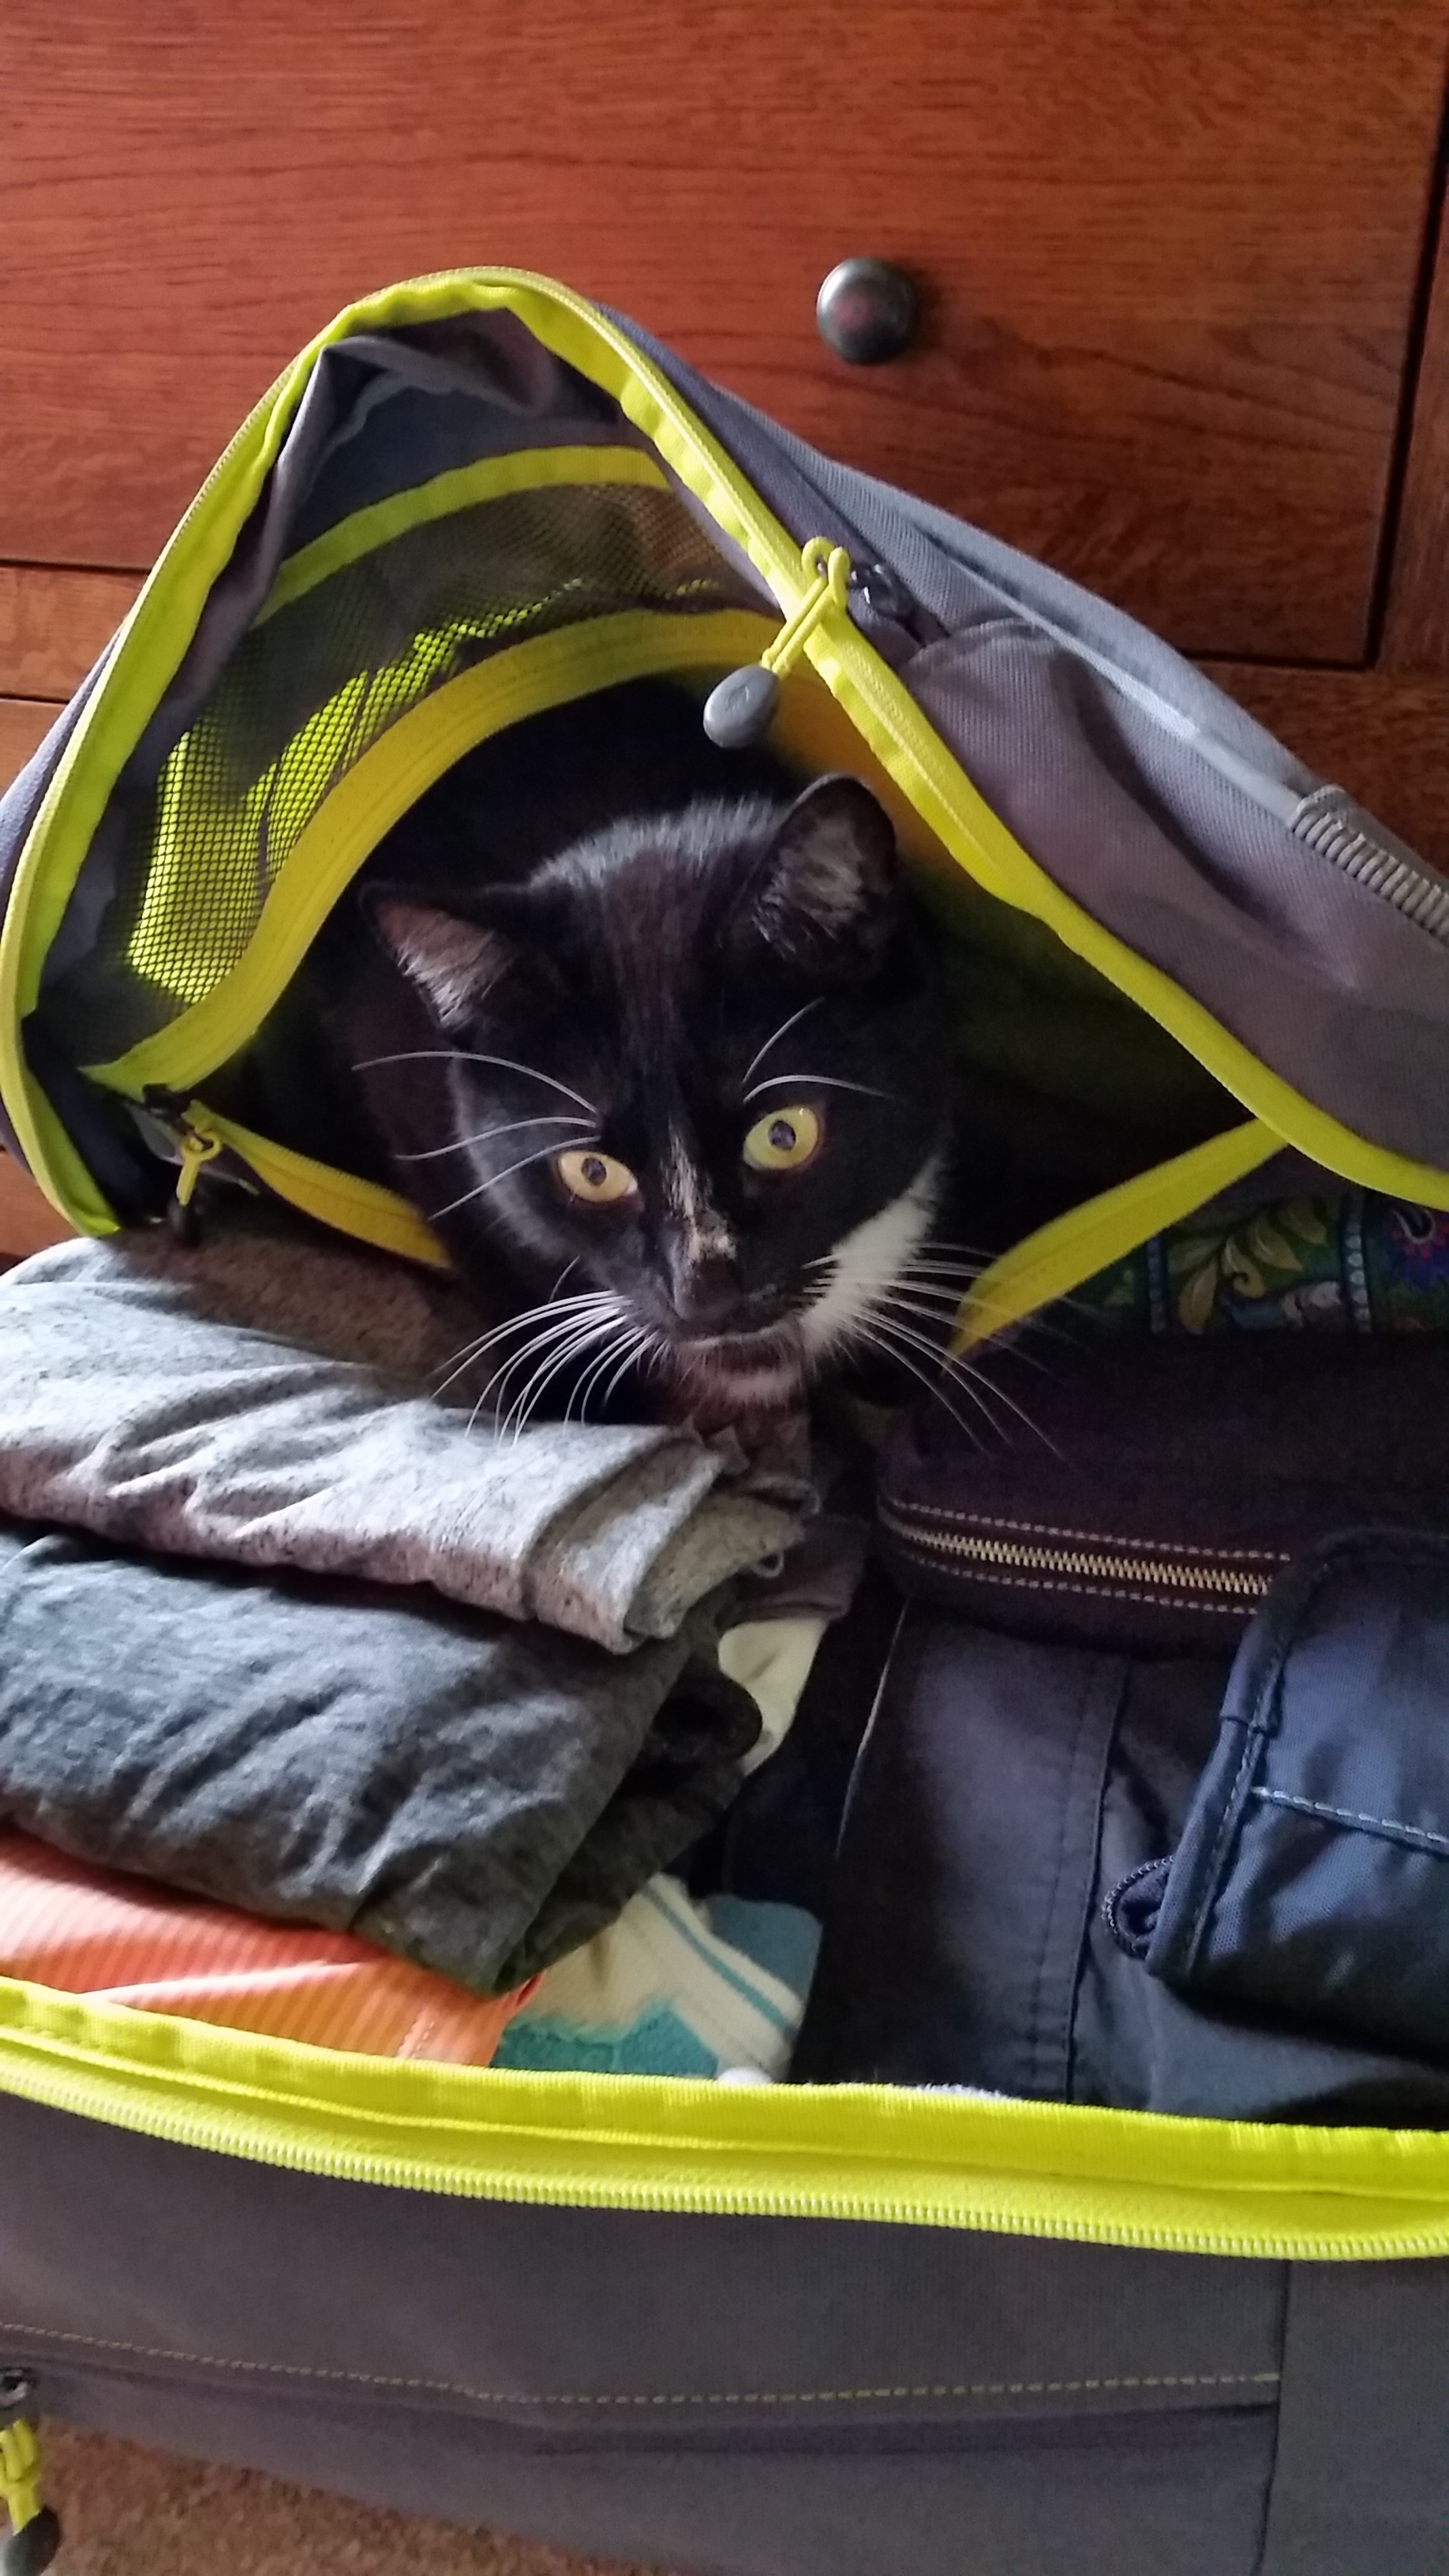 My cat, Siggy, helping with the packing.